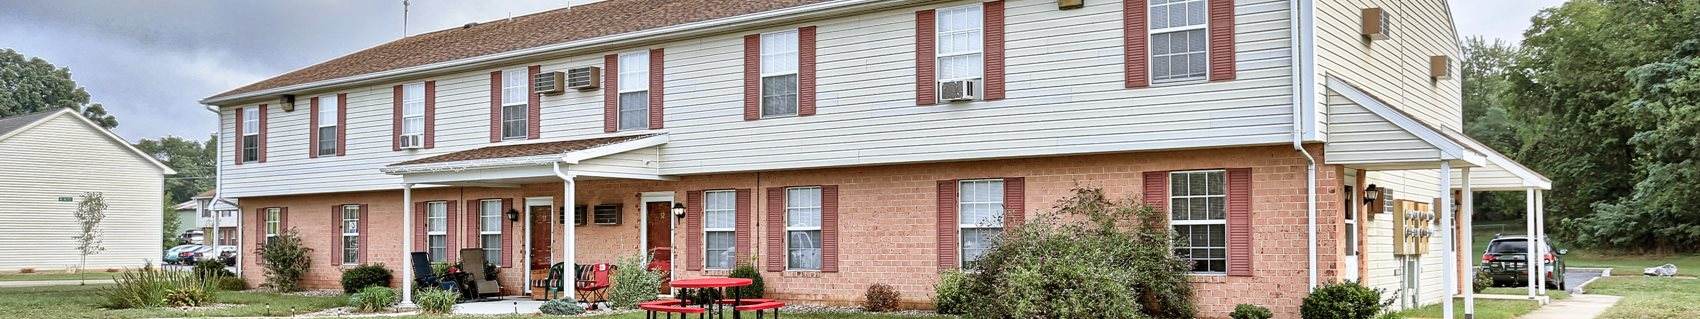 Shippensburg University Housing | Bard Townhouses